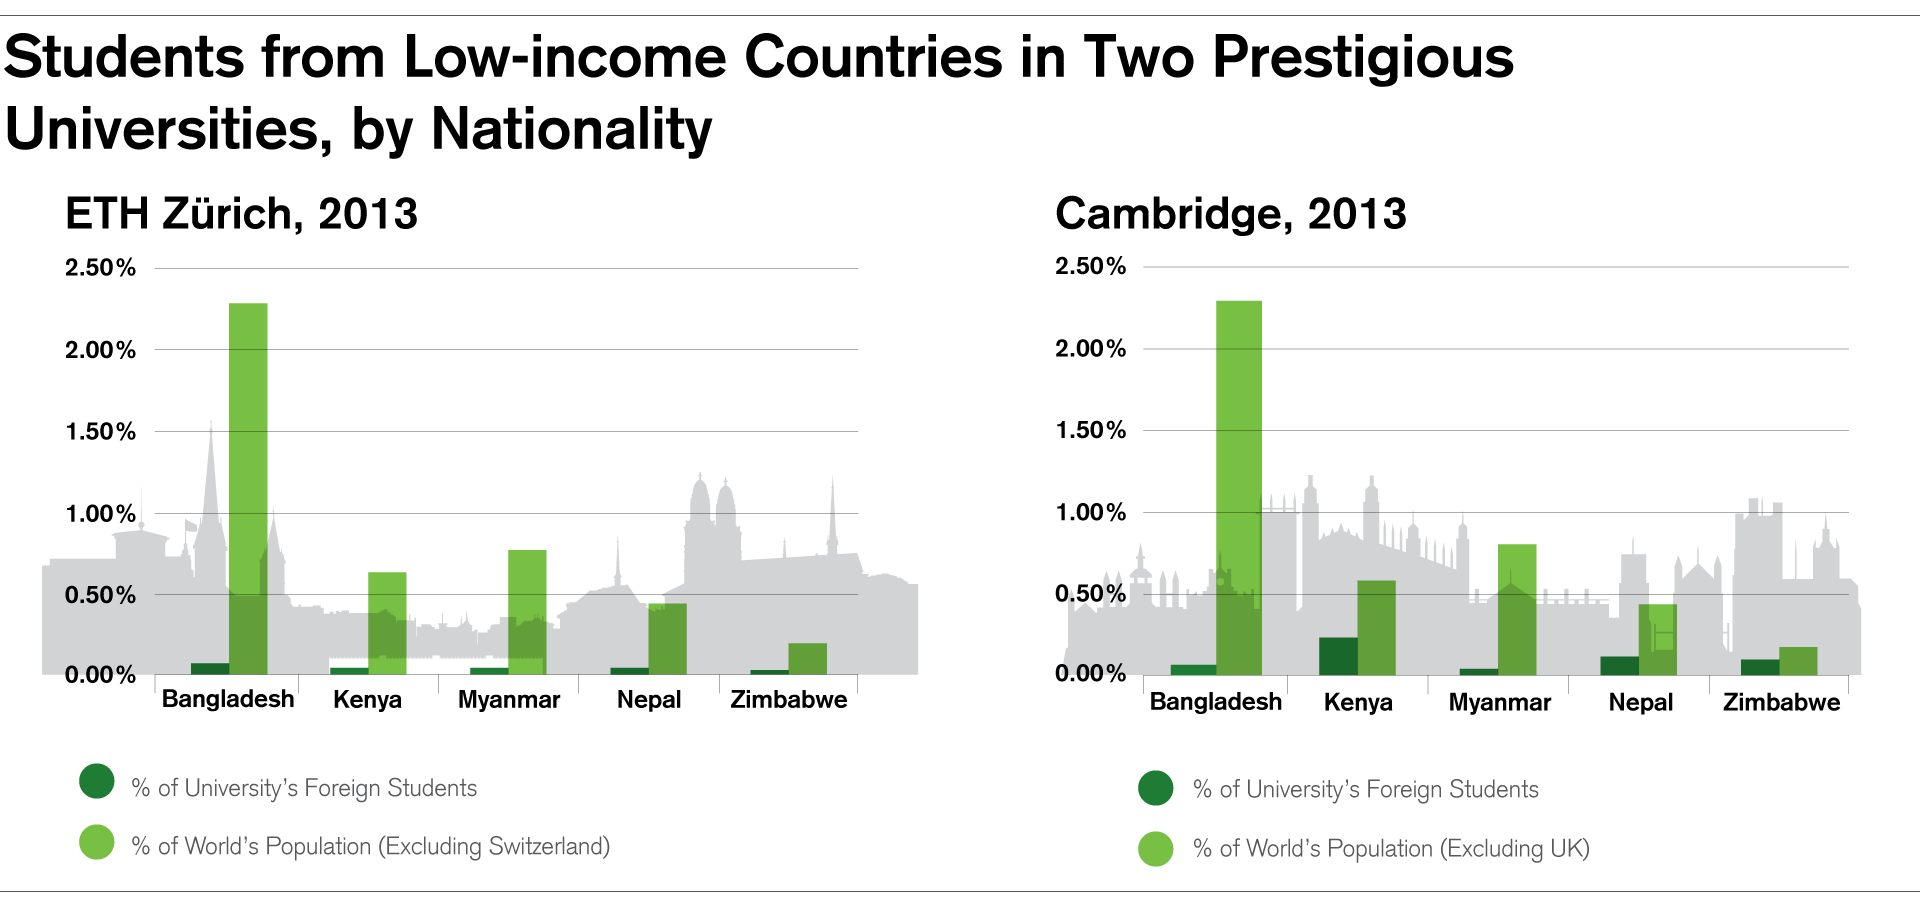 Students from Low-income Countries in Two Prestigious Universities, by Nationality